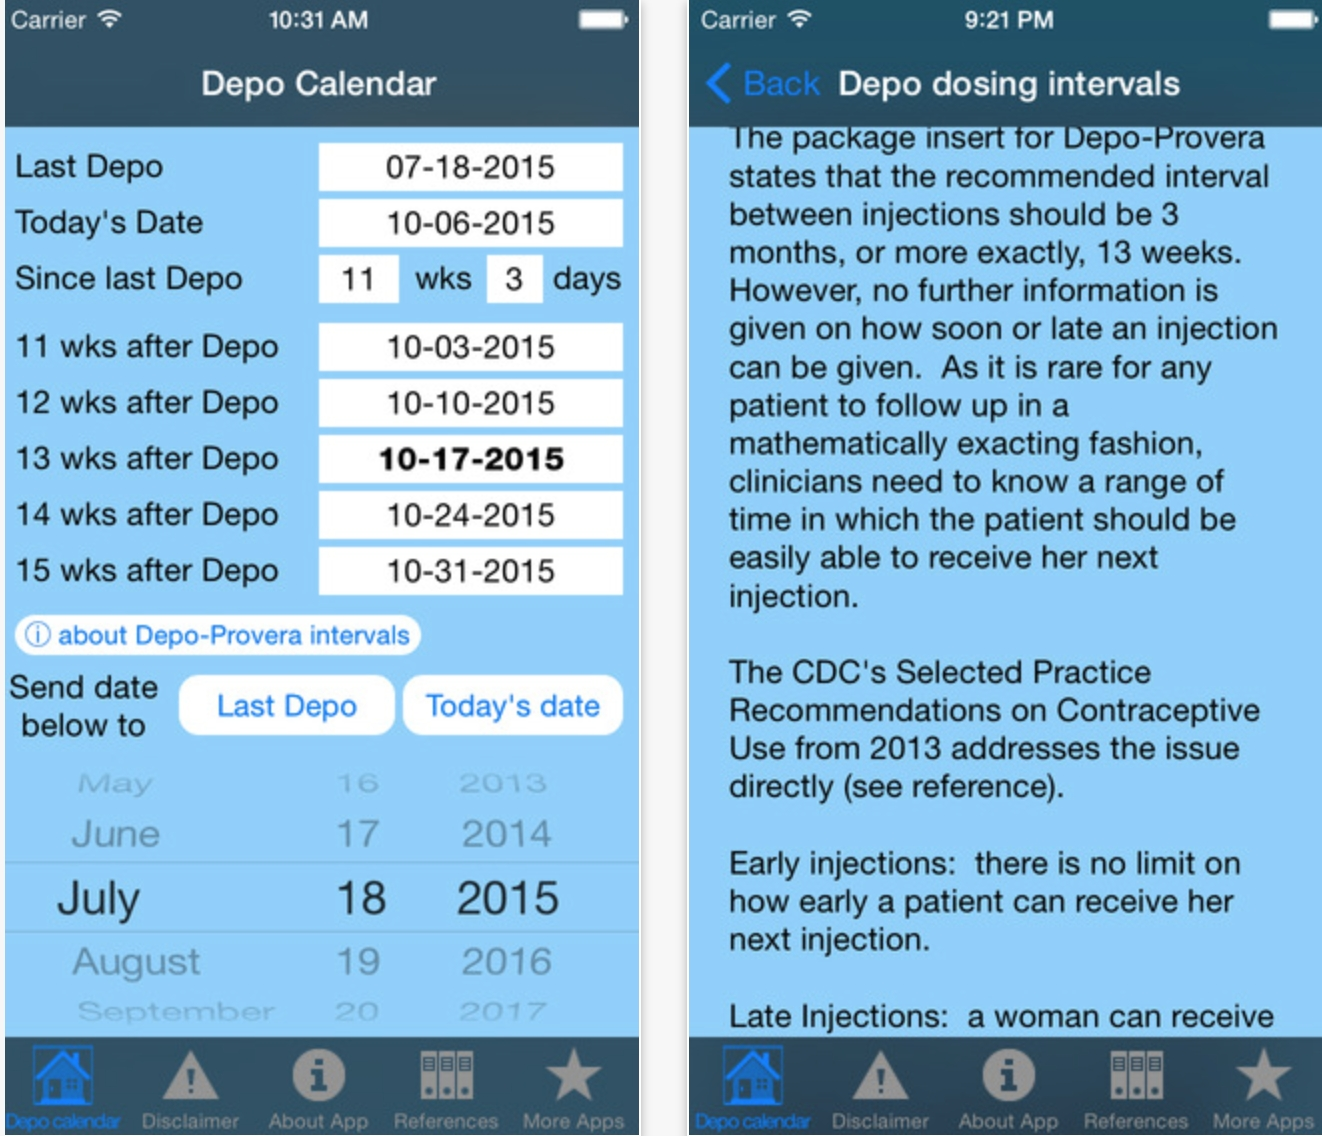 Depo Calendar App Could Significantly Improve Contraception  Depoprovera Calender